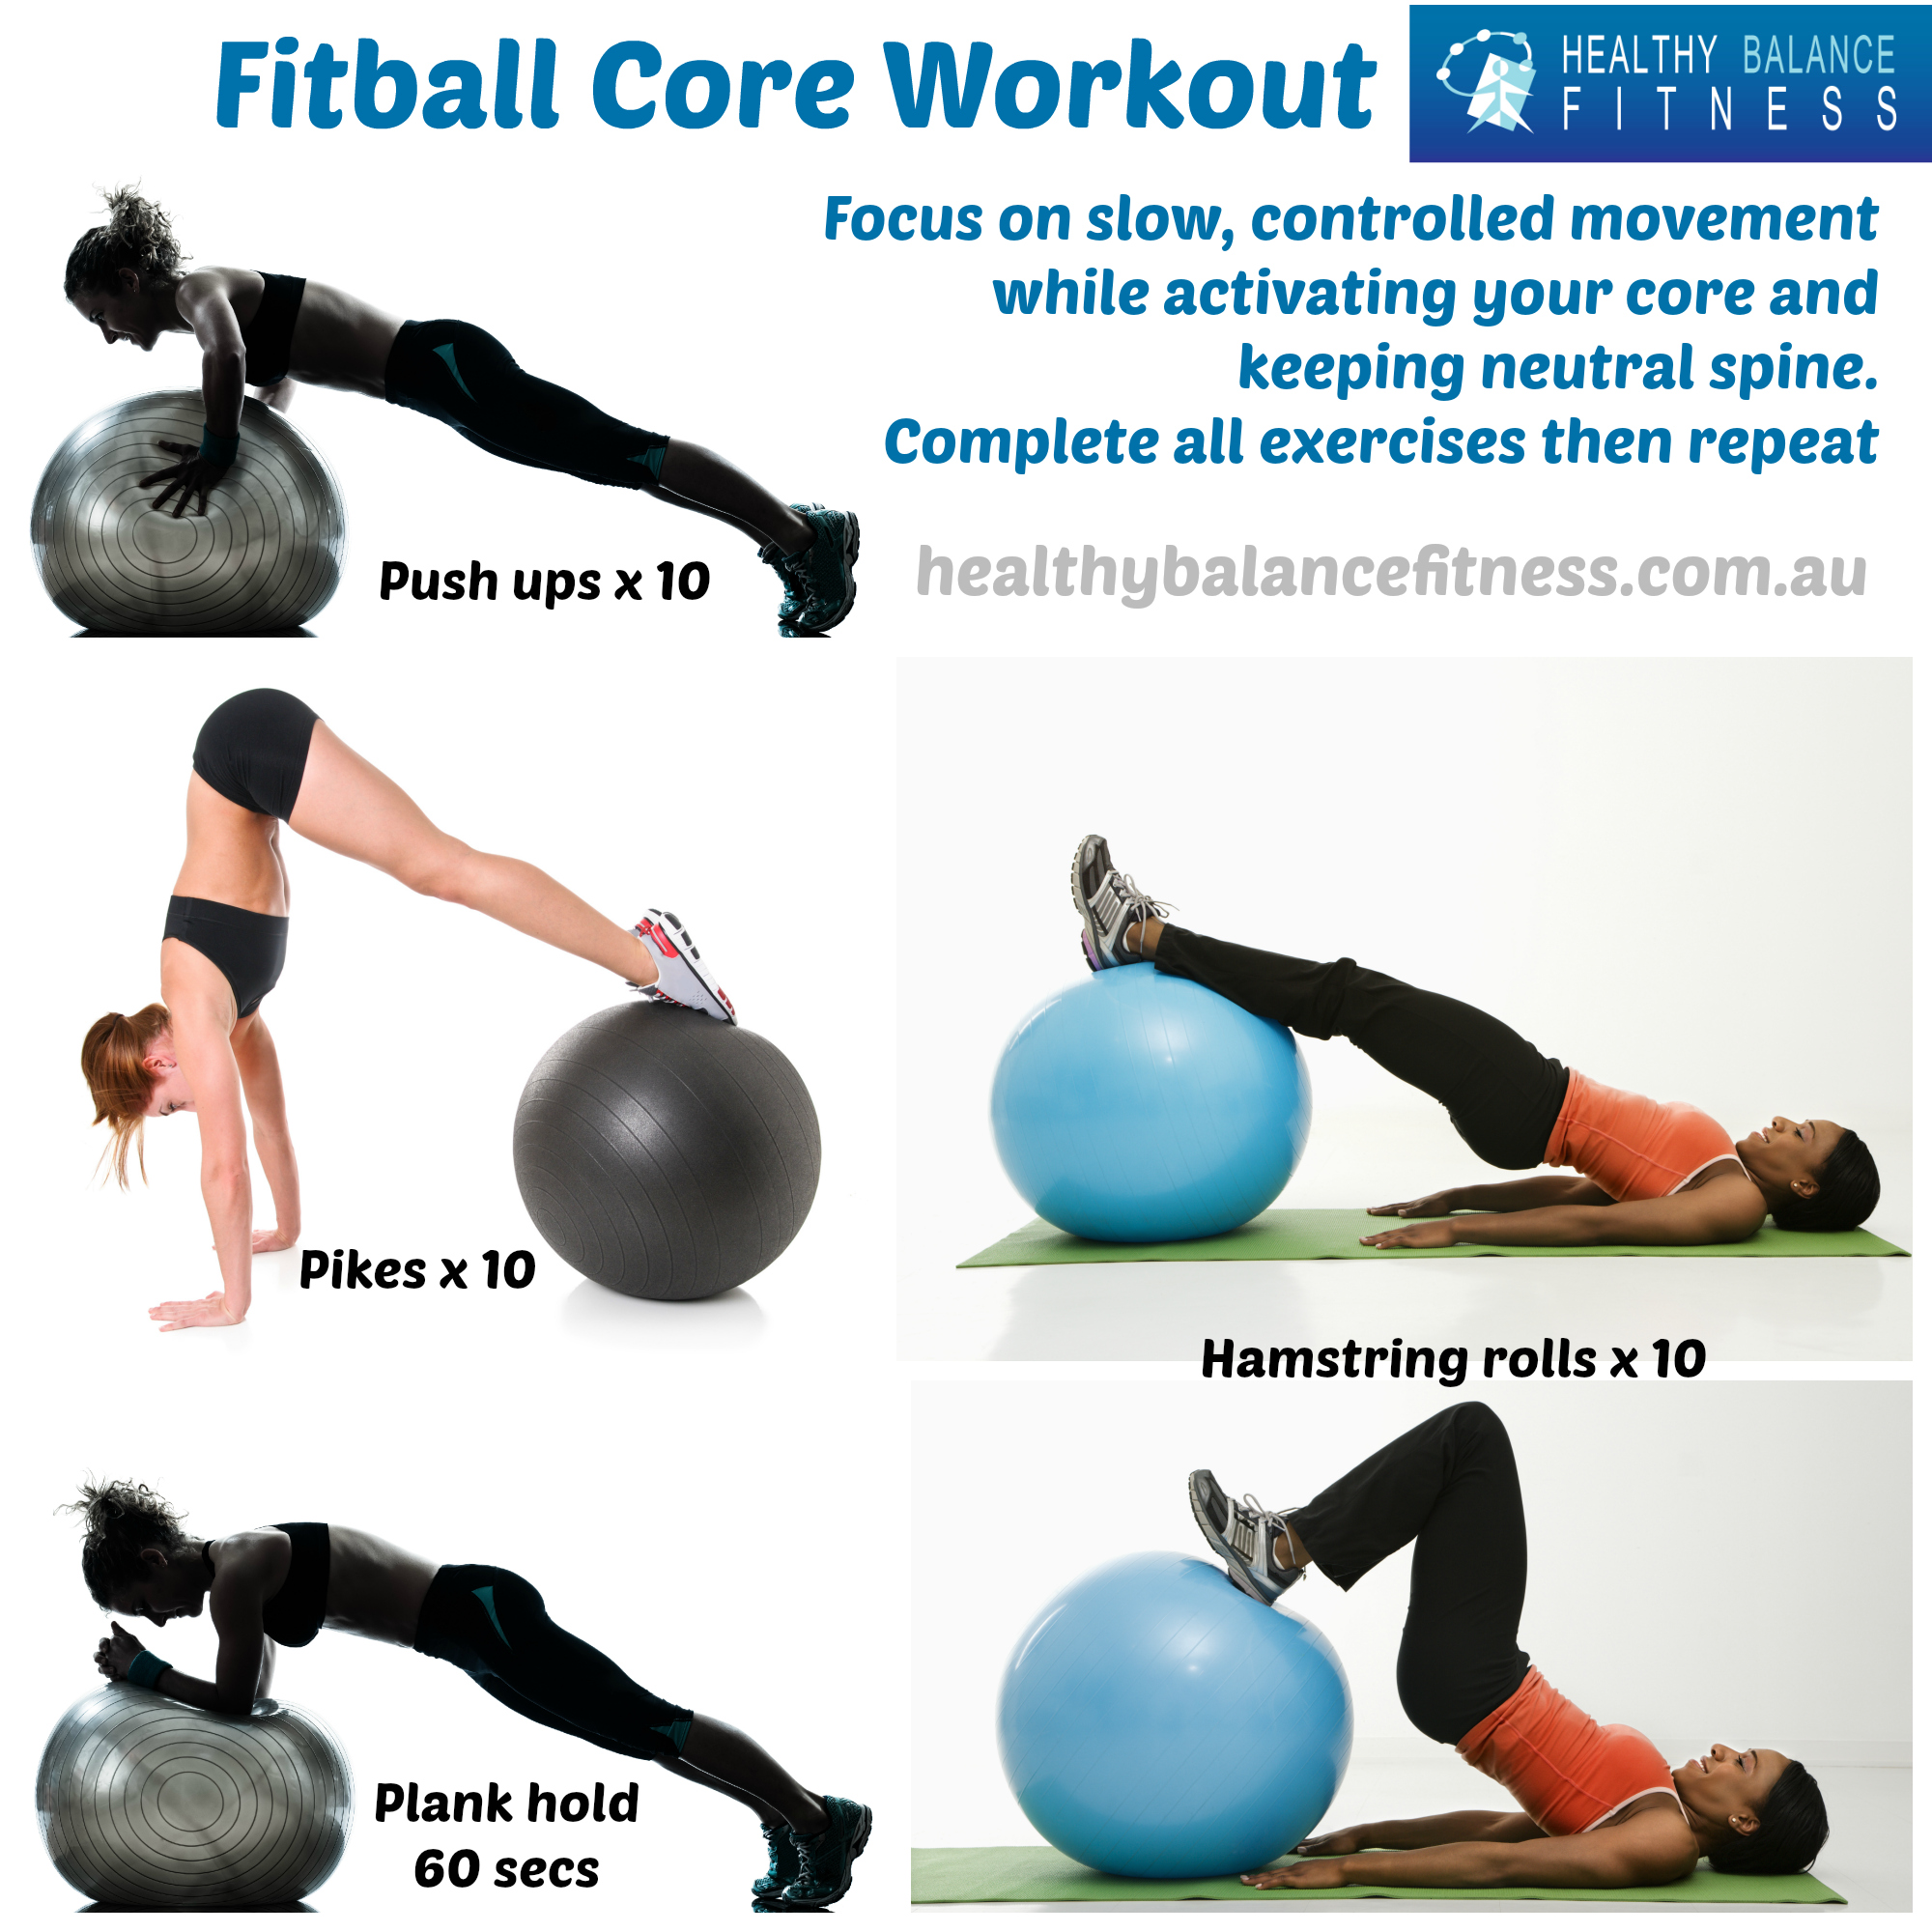 ... and strength with this Fitball core workout - Healthy Balance Fitness